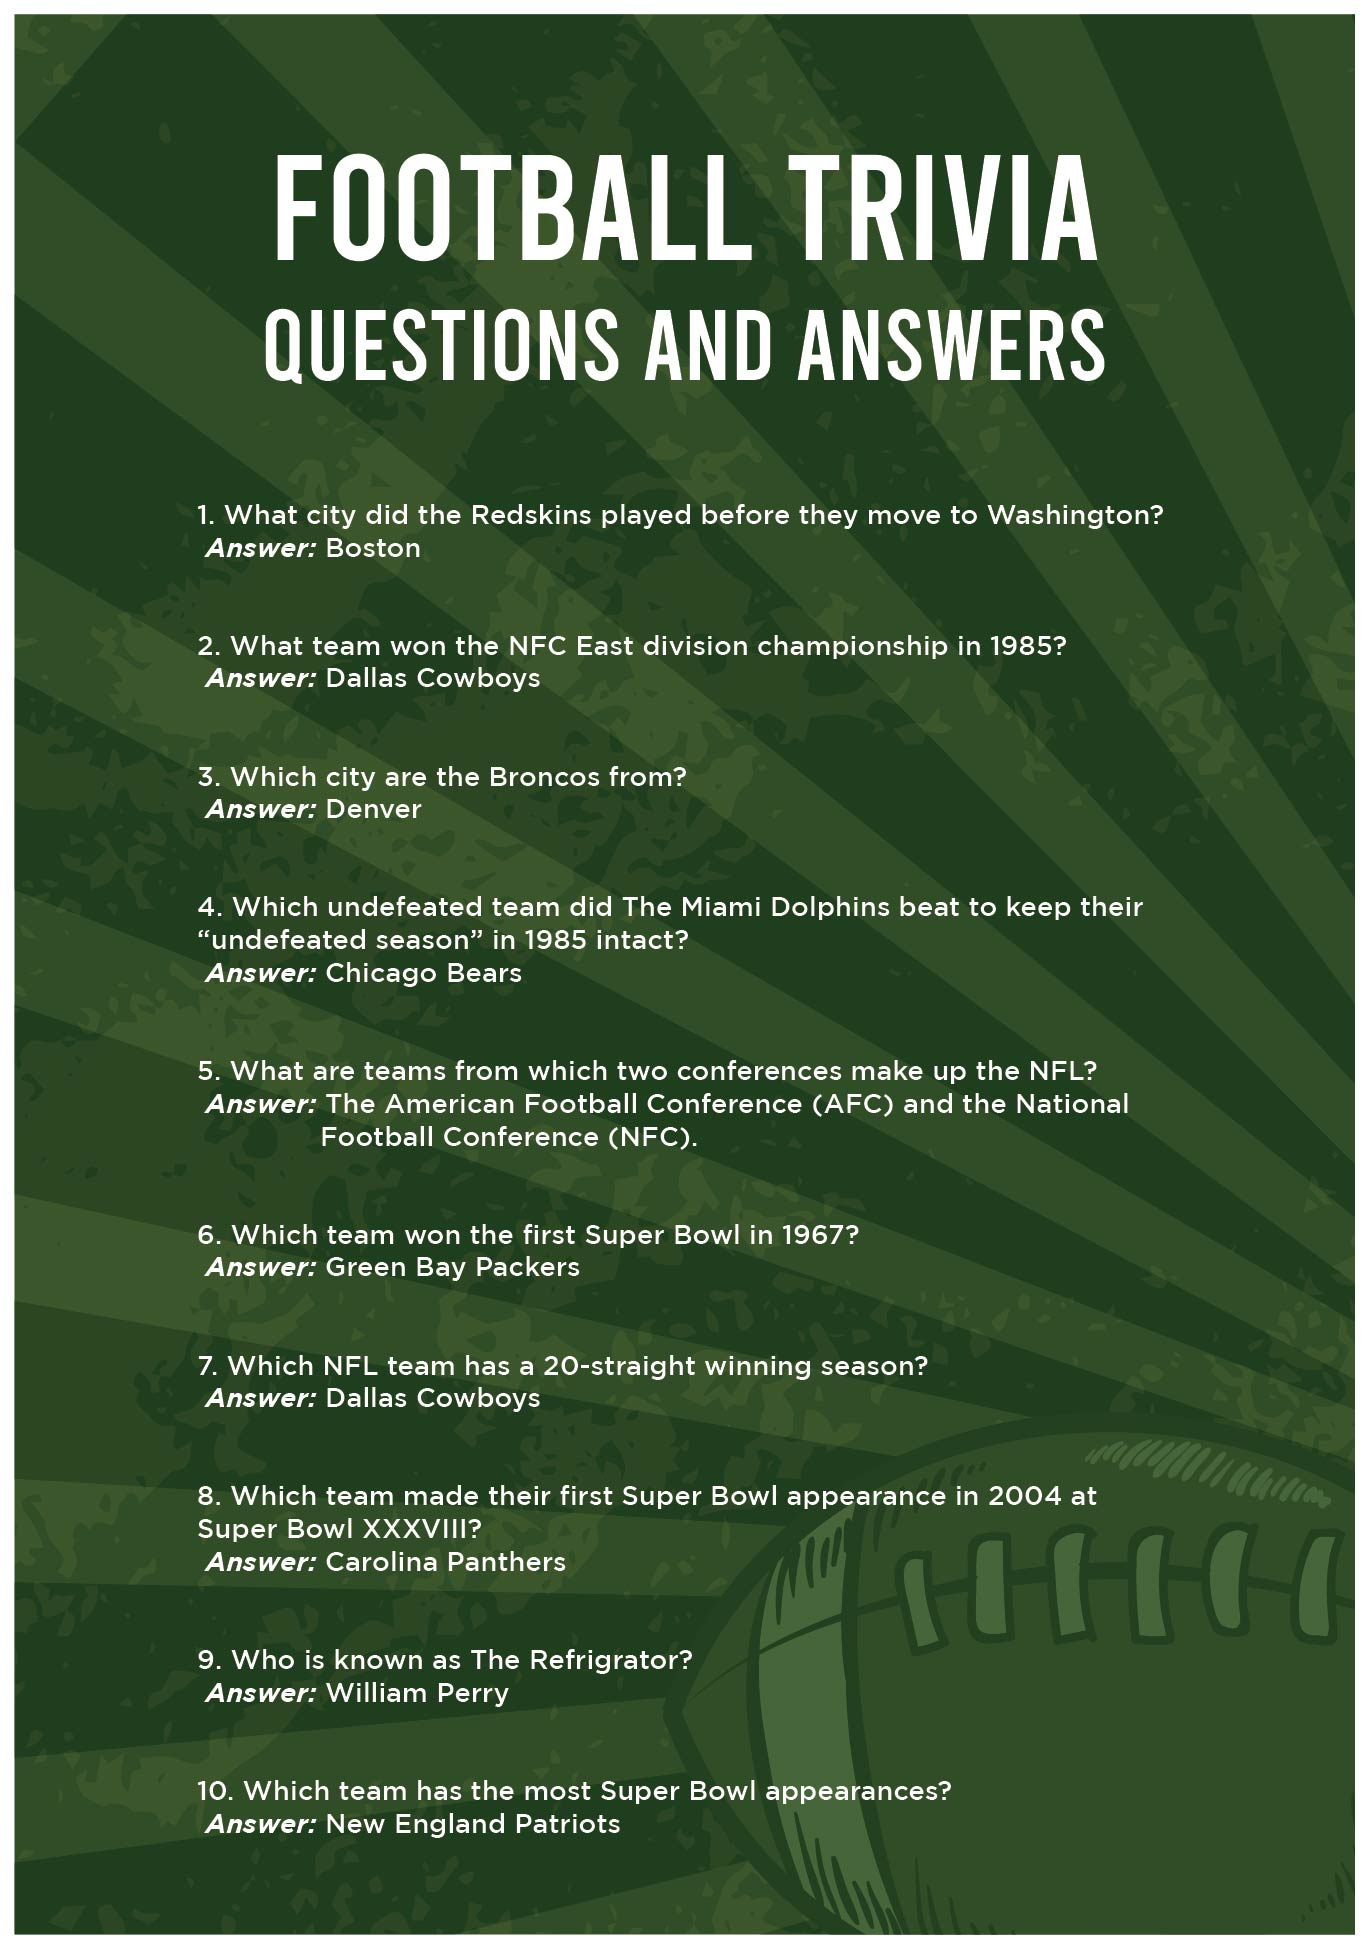 Football Trivia Questions and Answers